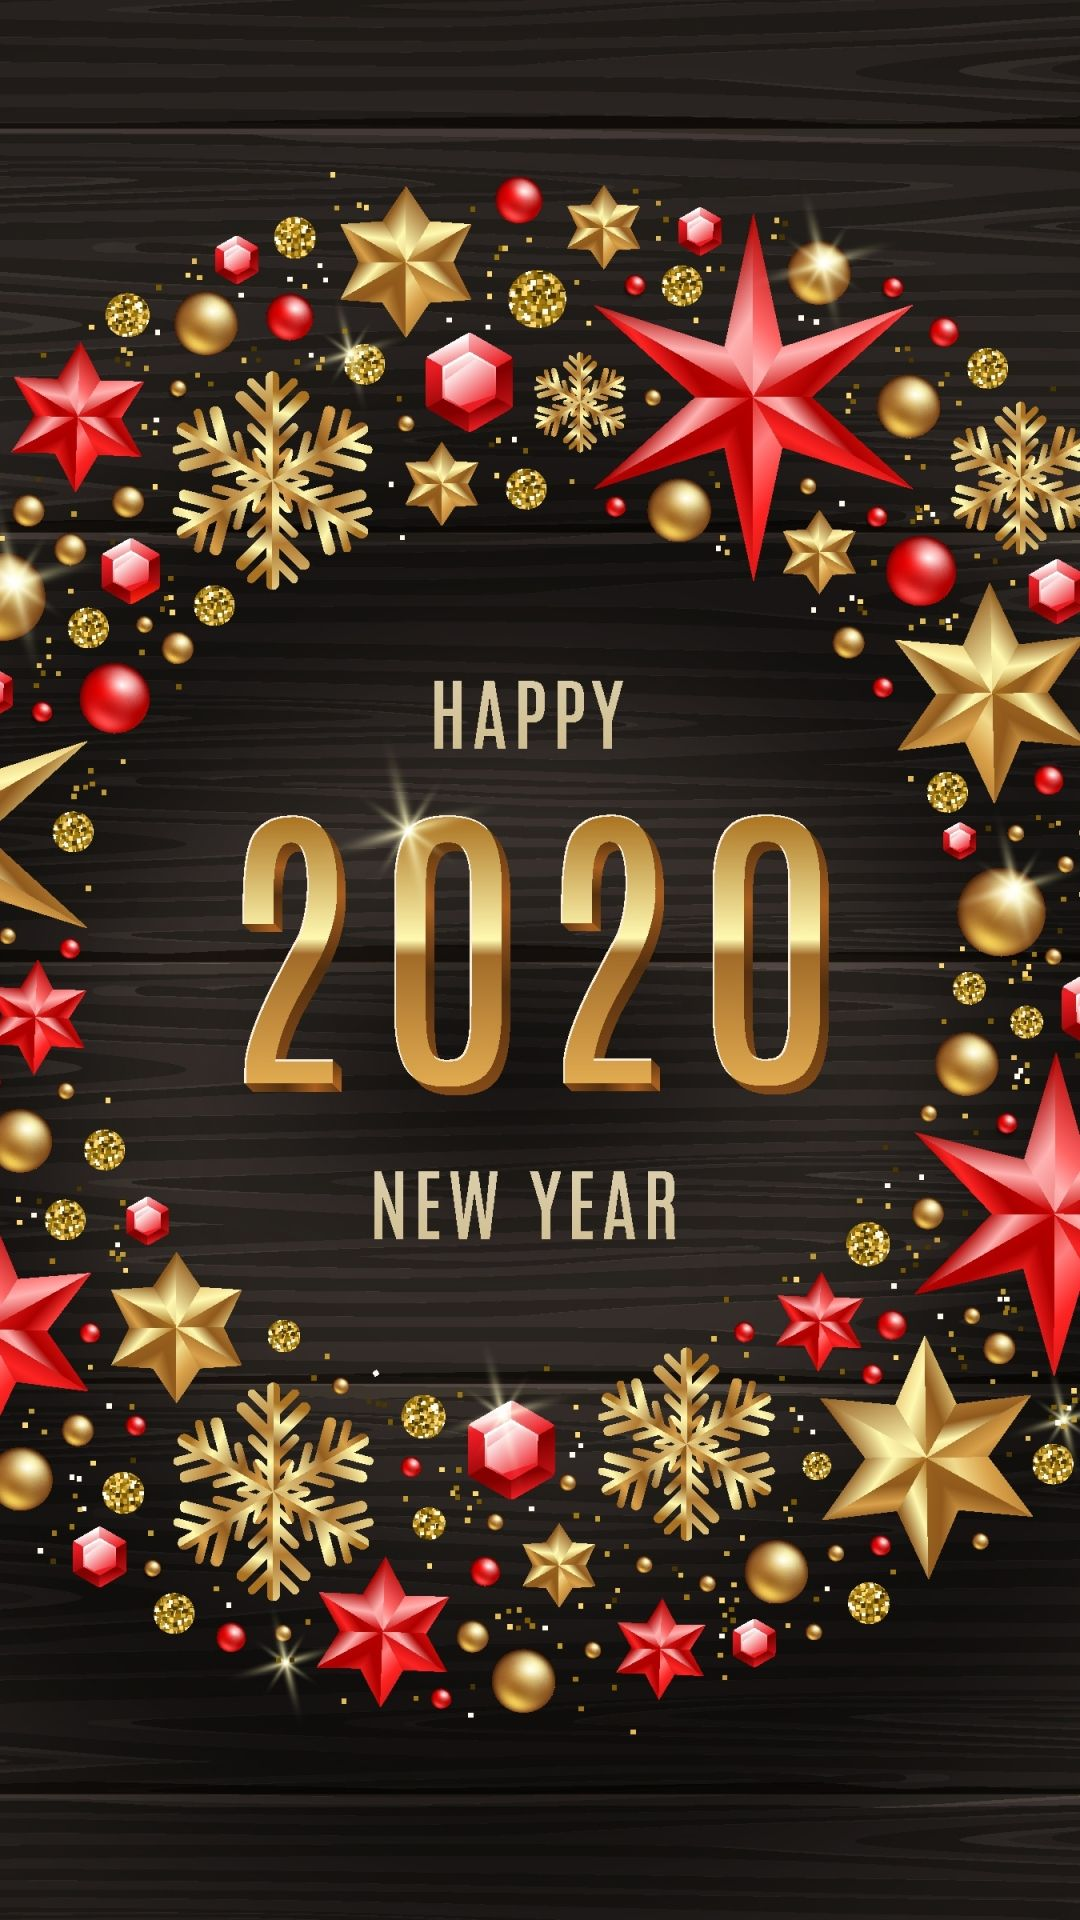 Download Happy New Year 2020 Wishes Wallpaper for your Android 1080x1920